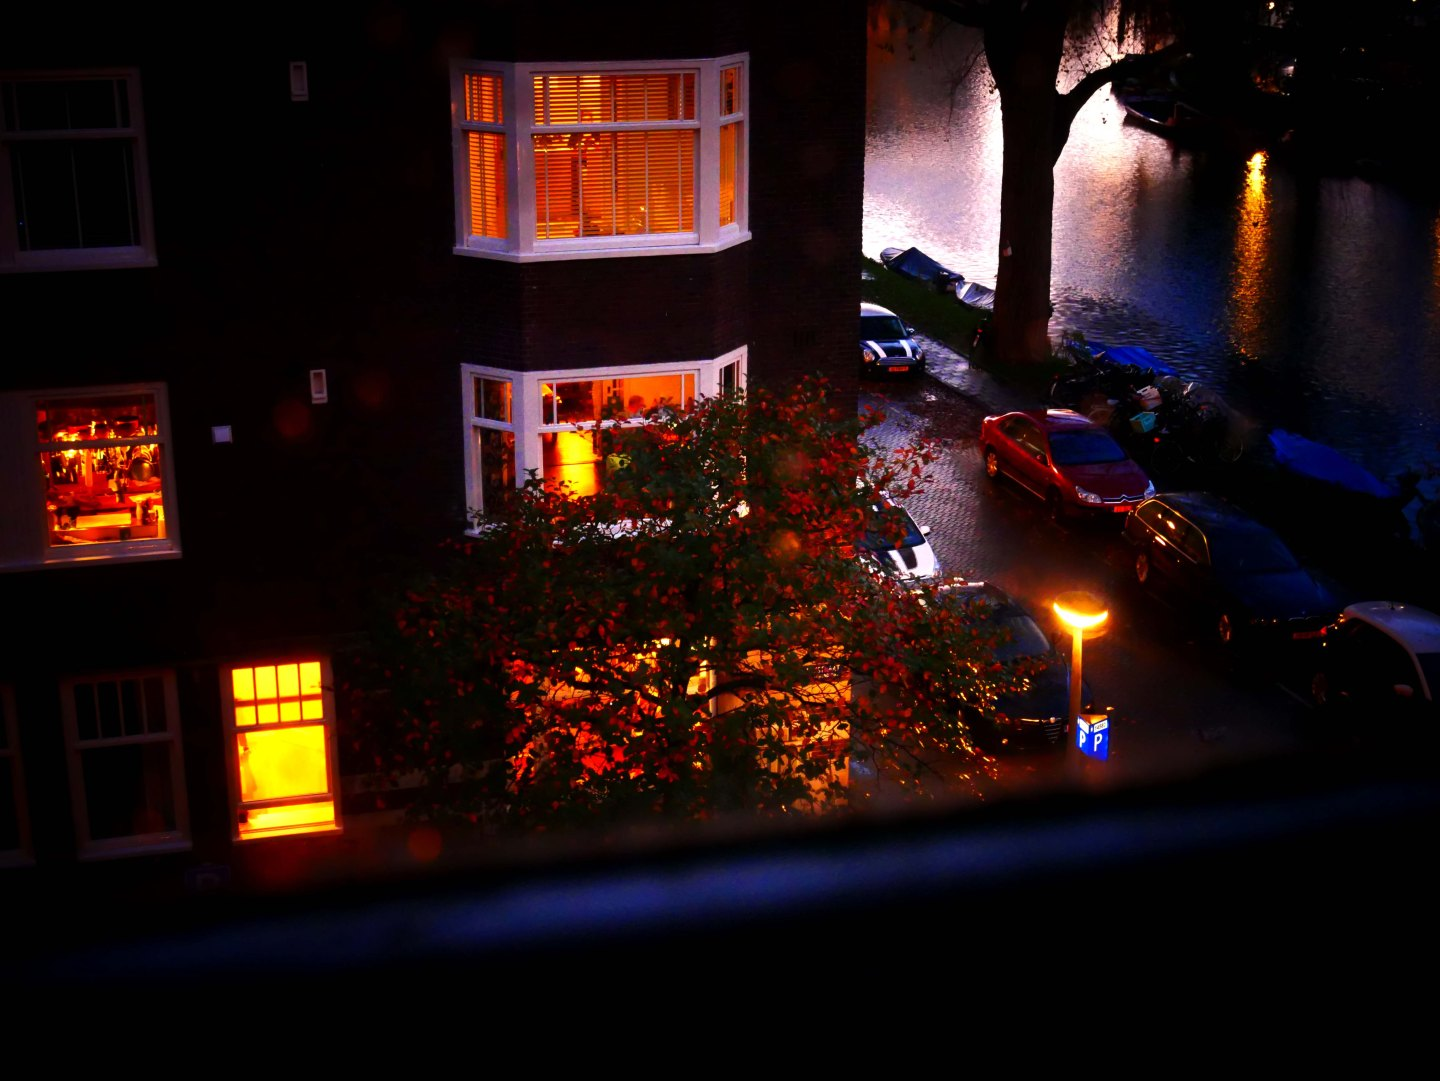 Window view on a quiet neighborhood and on an Amsterdam canal at nightfall - the Netherlands